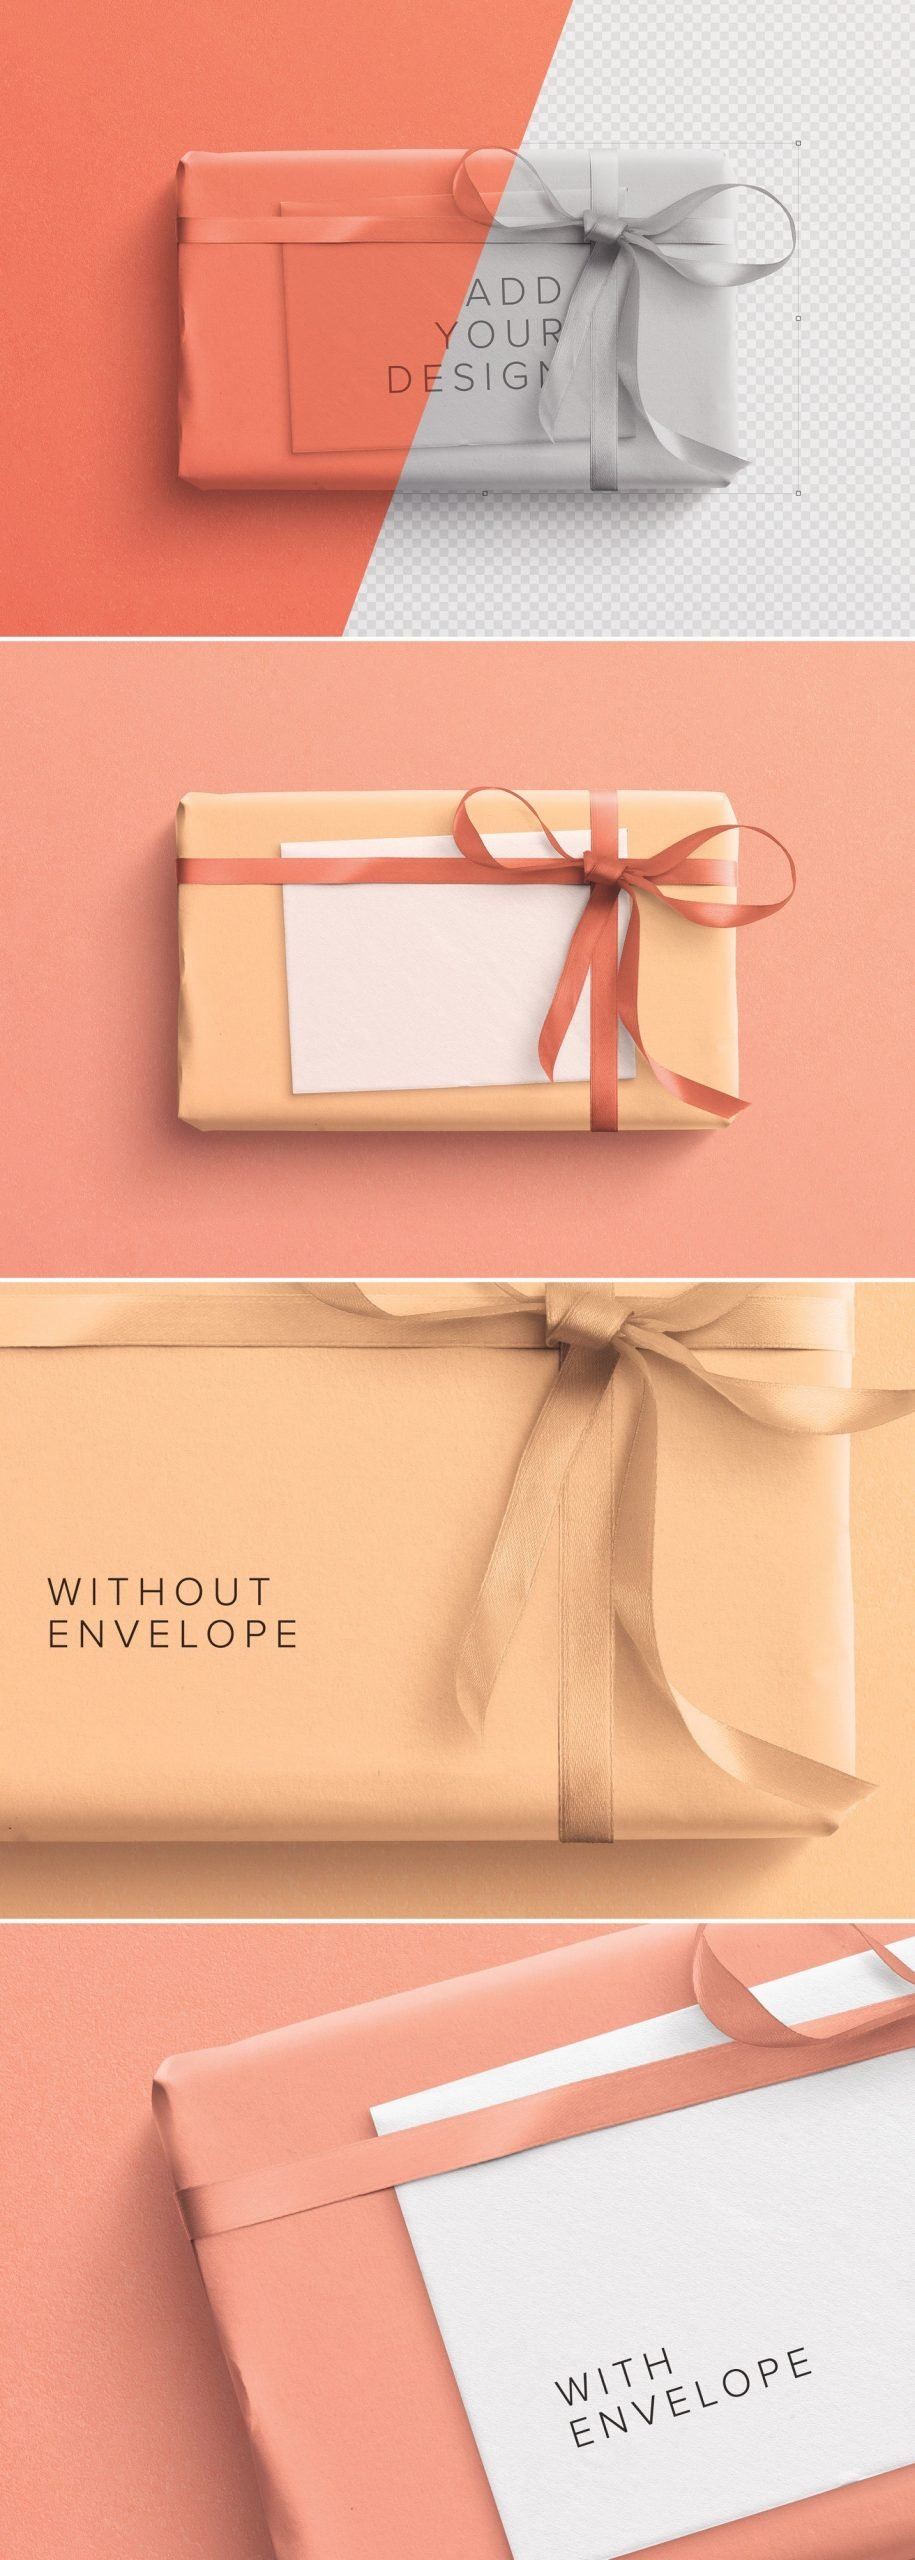 gift box 2 mockup preview1 1 scaled